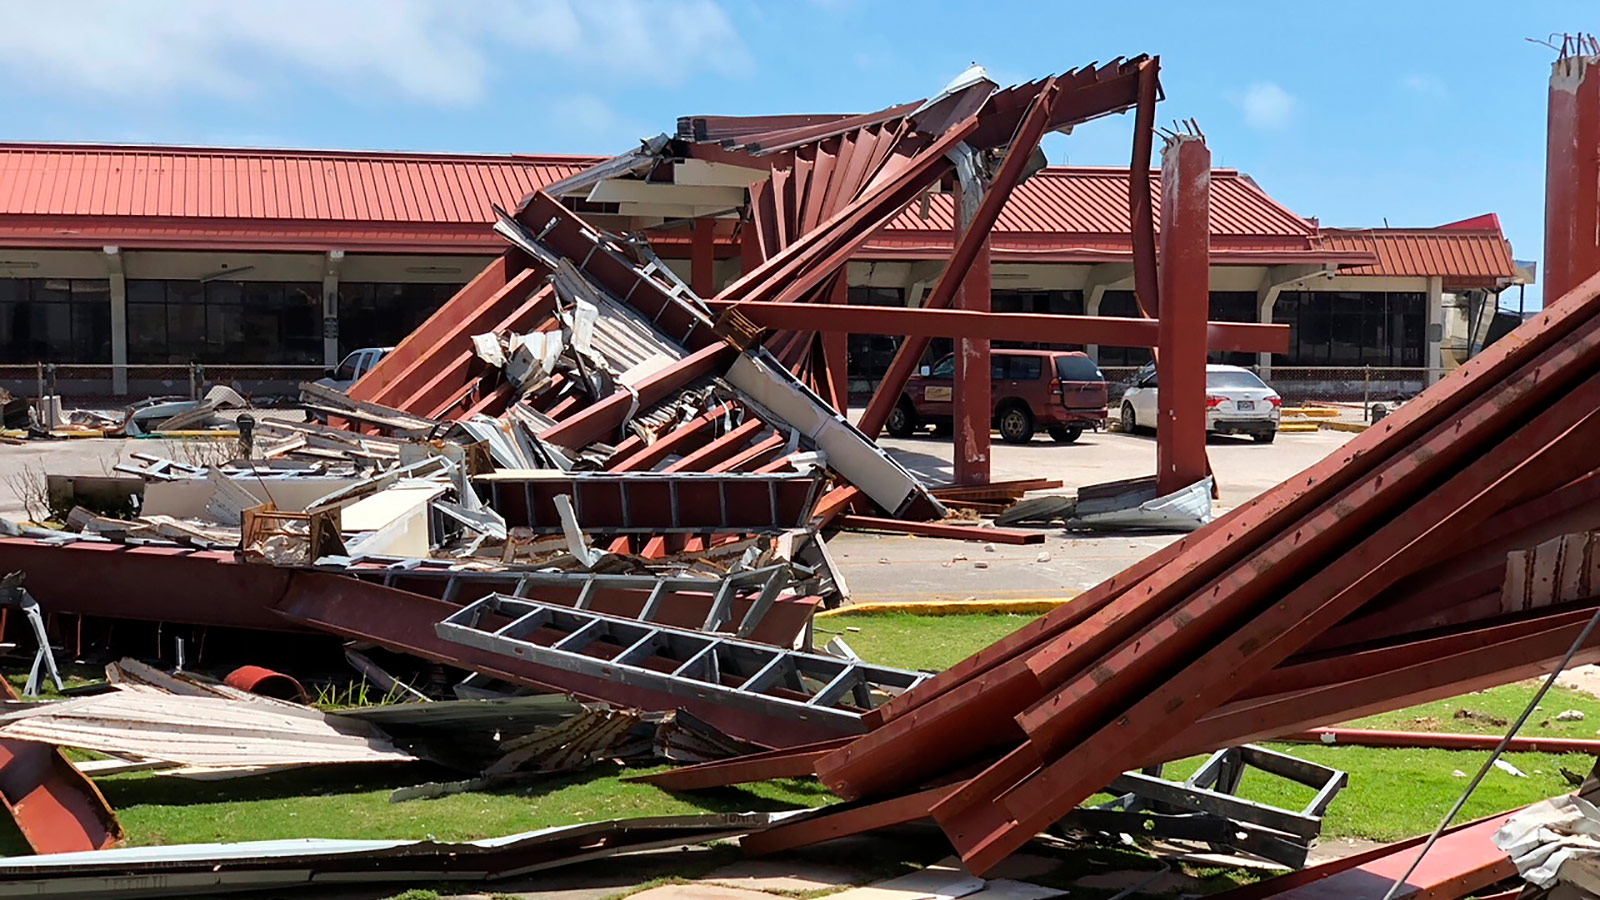 Damage at Saipan's airport is shown after Super Typhoon Yutu hit the U.S. Commonwealth of the Northern Mariana Islands, Friday, Oct. 26, 2018, in Garapan, Saipan.